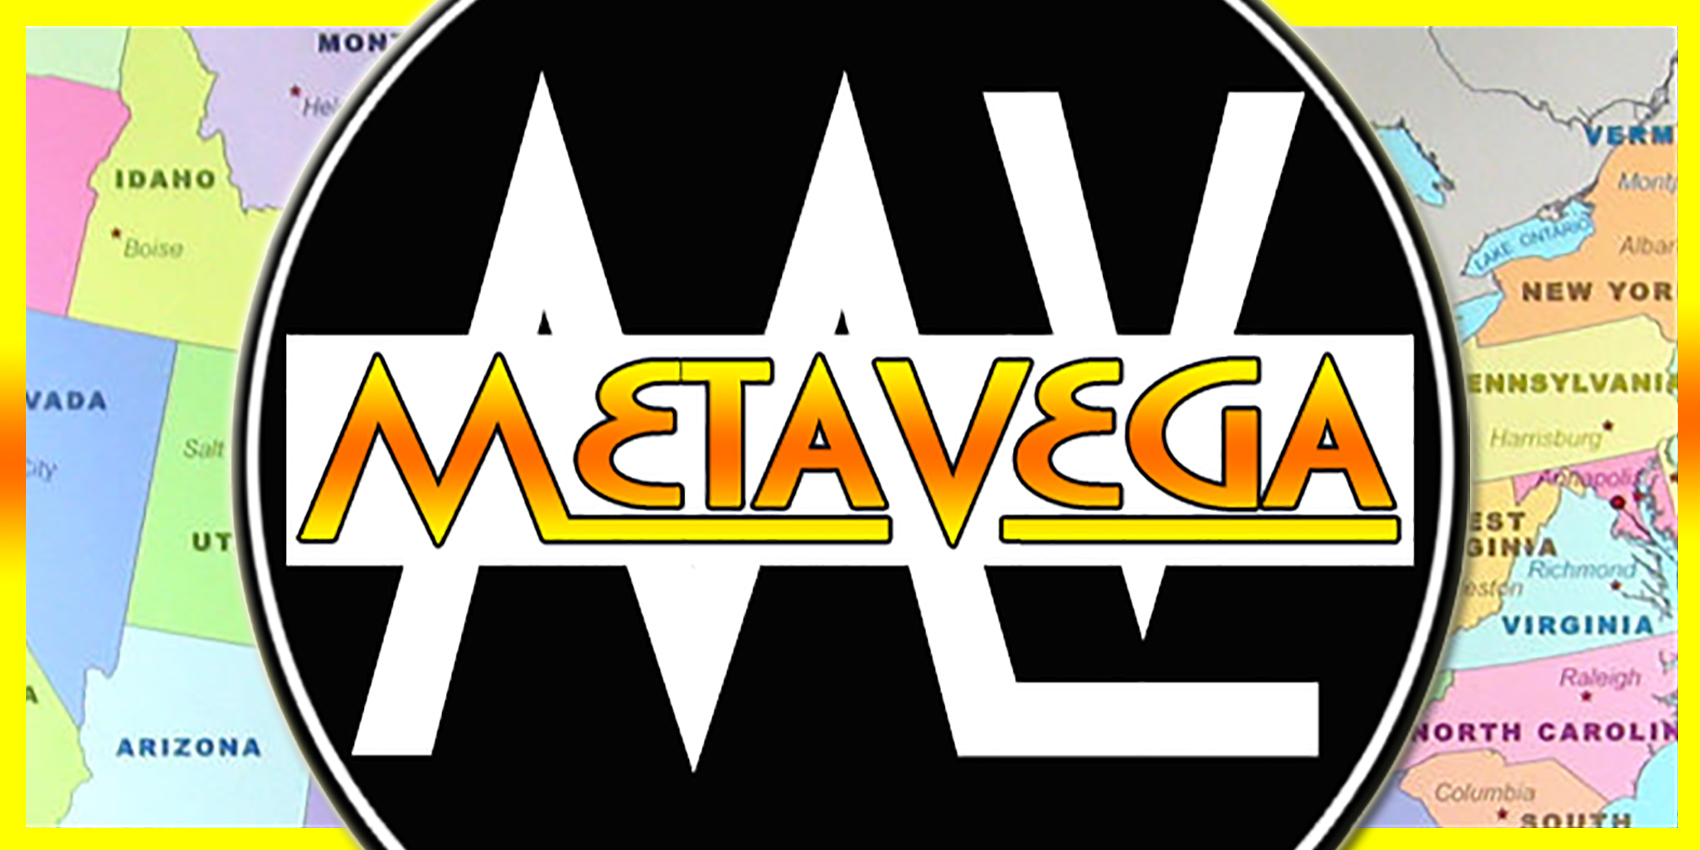 Metavega | Find Us